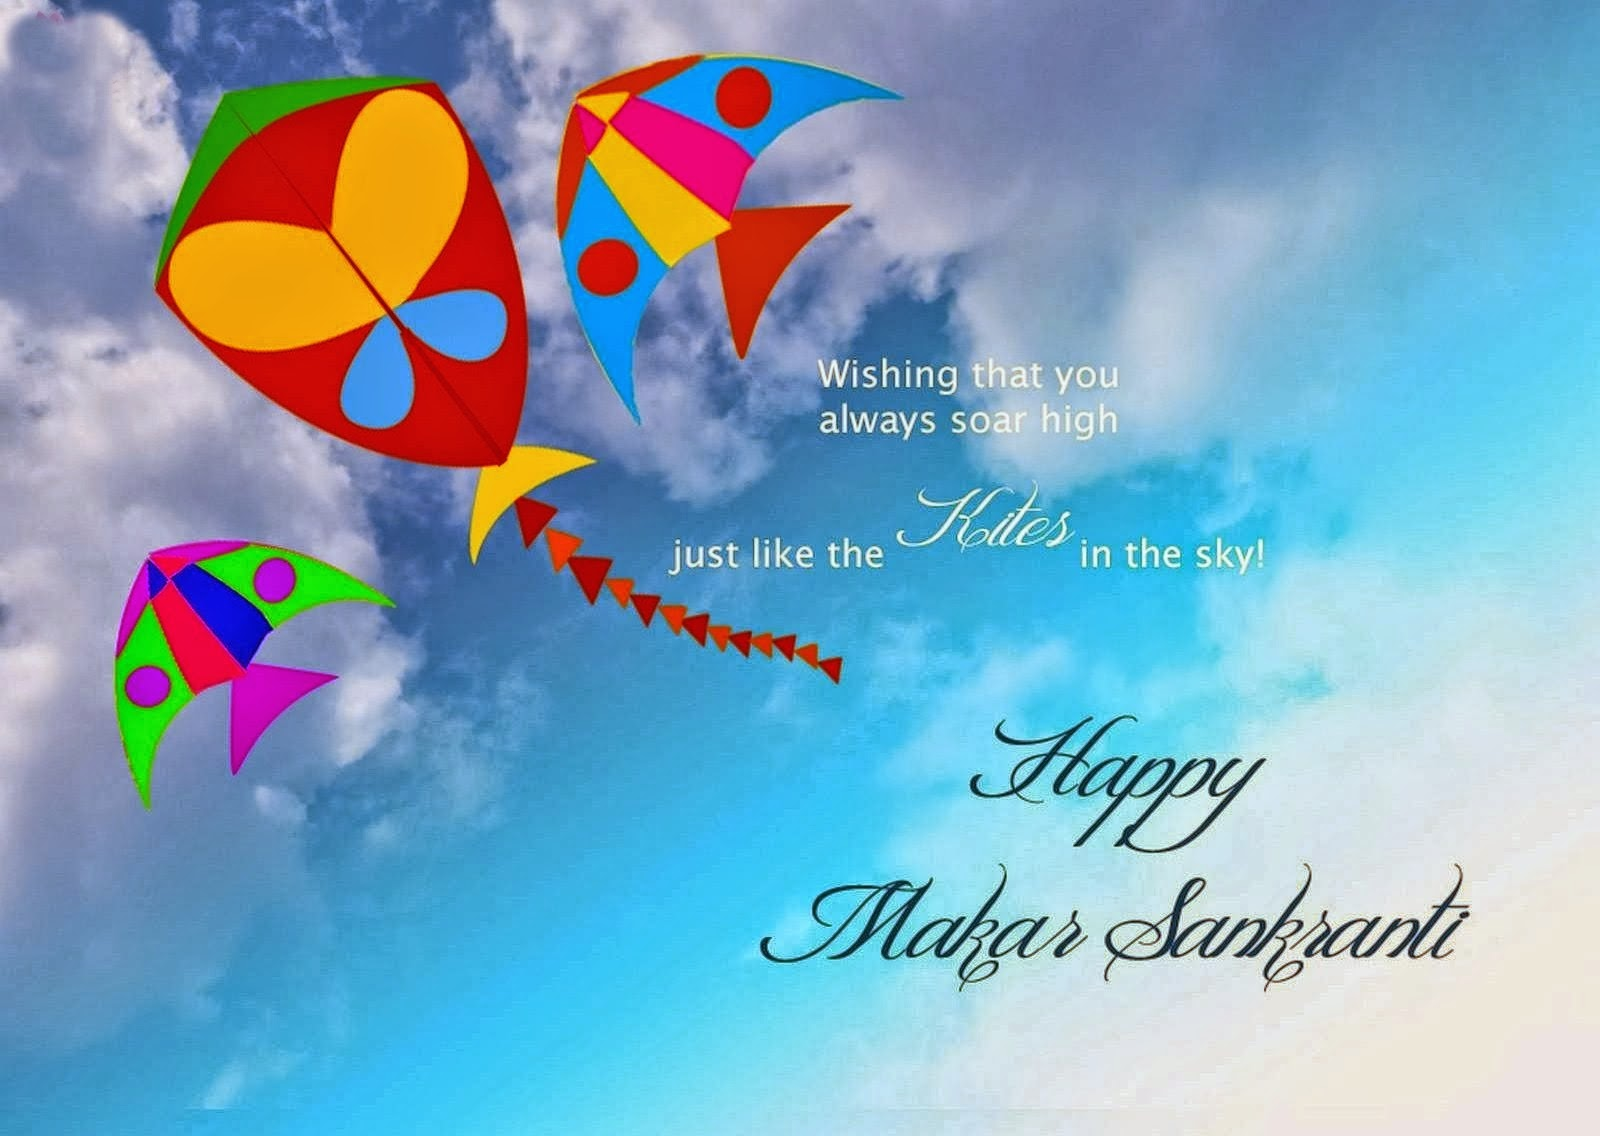 Happy Makar Sankranti 2015 Sms Messages Text Wishes In